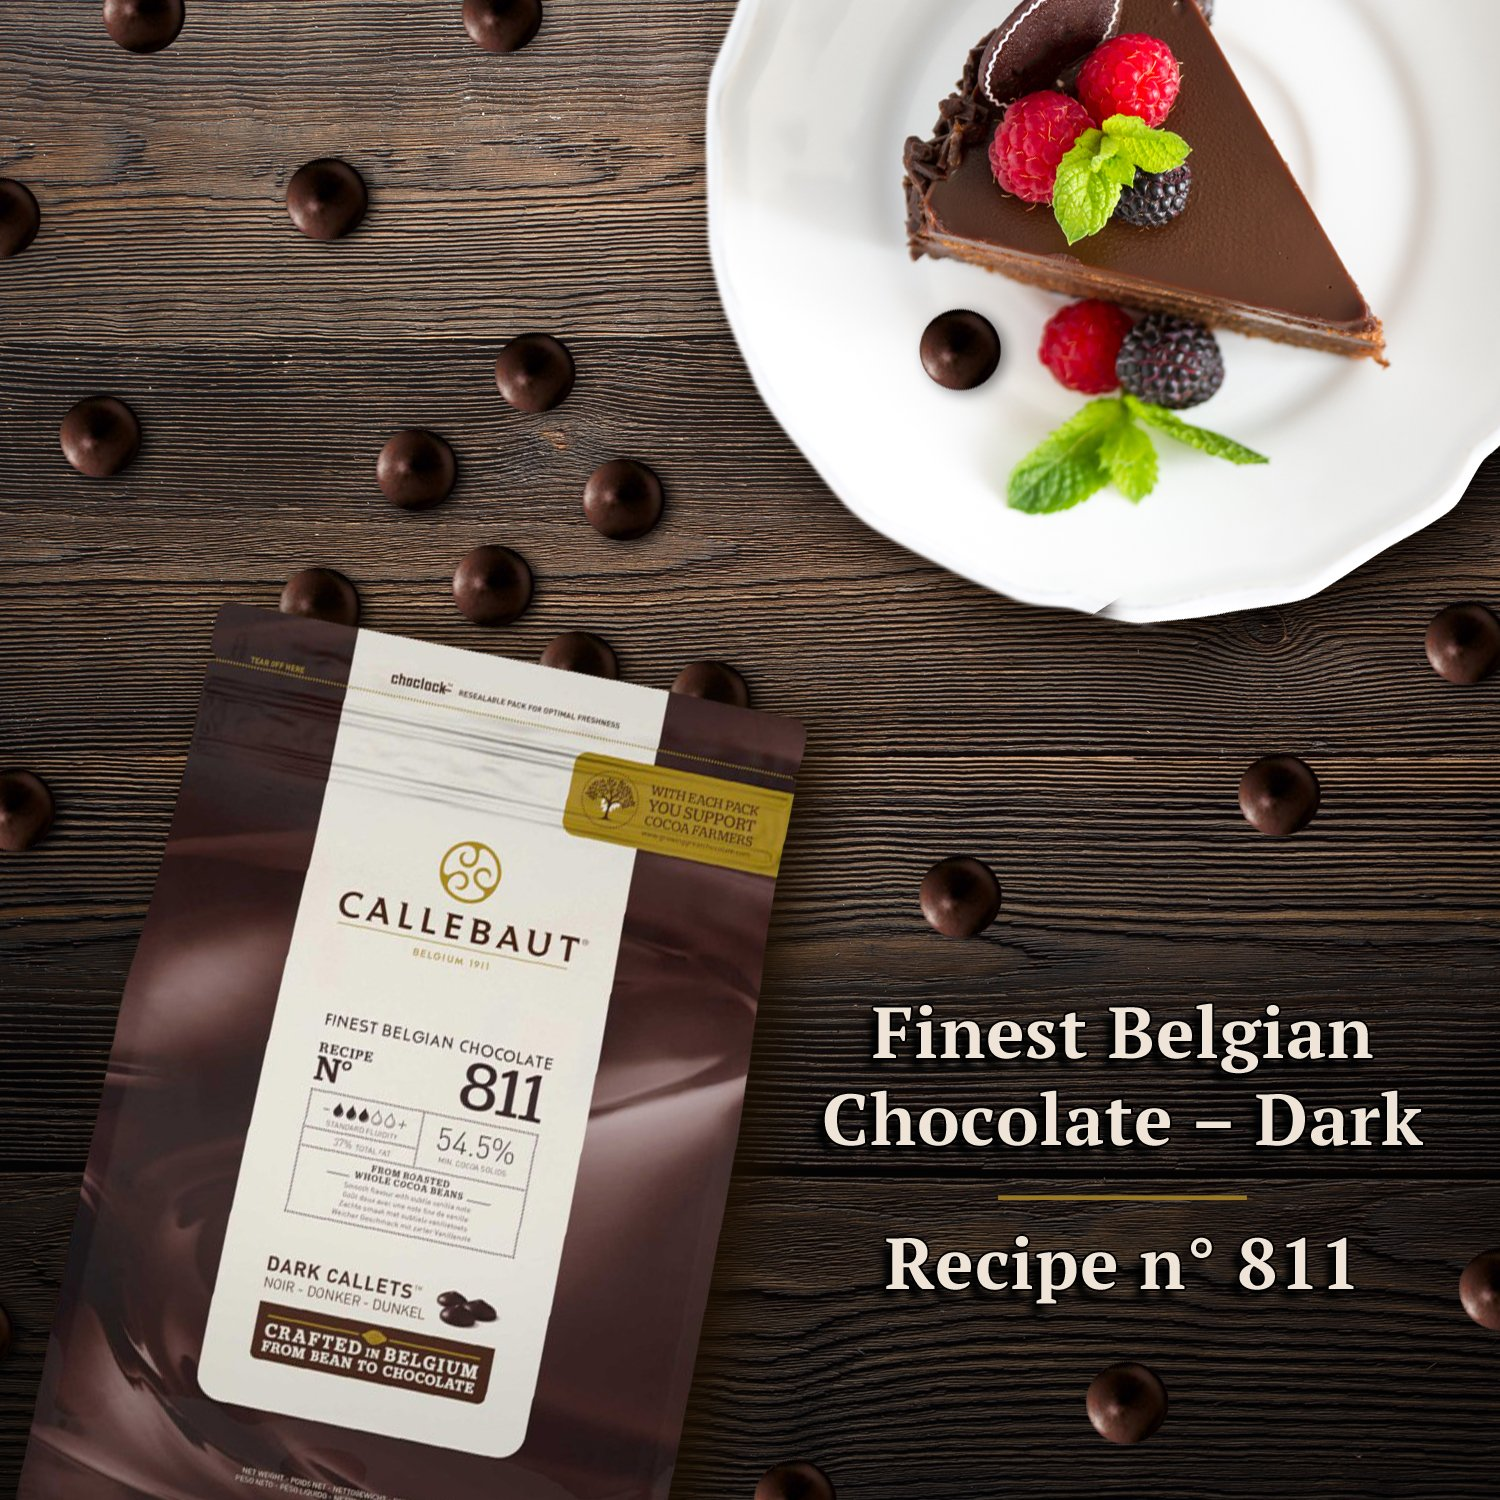 Callebaut Couverture Cacao Dark Baking Belgian Semisweet Chocolate Callets 4 pack. 54.5% Cacao. Recipe N811. (5.5 Lbs x 4; 10 kg) by Callebaut (Image #3)